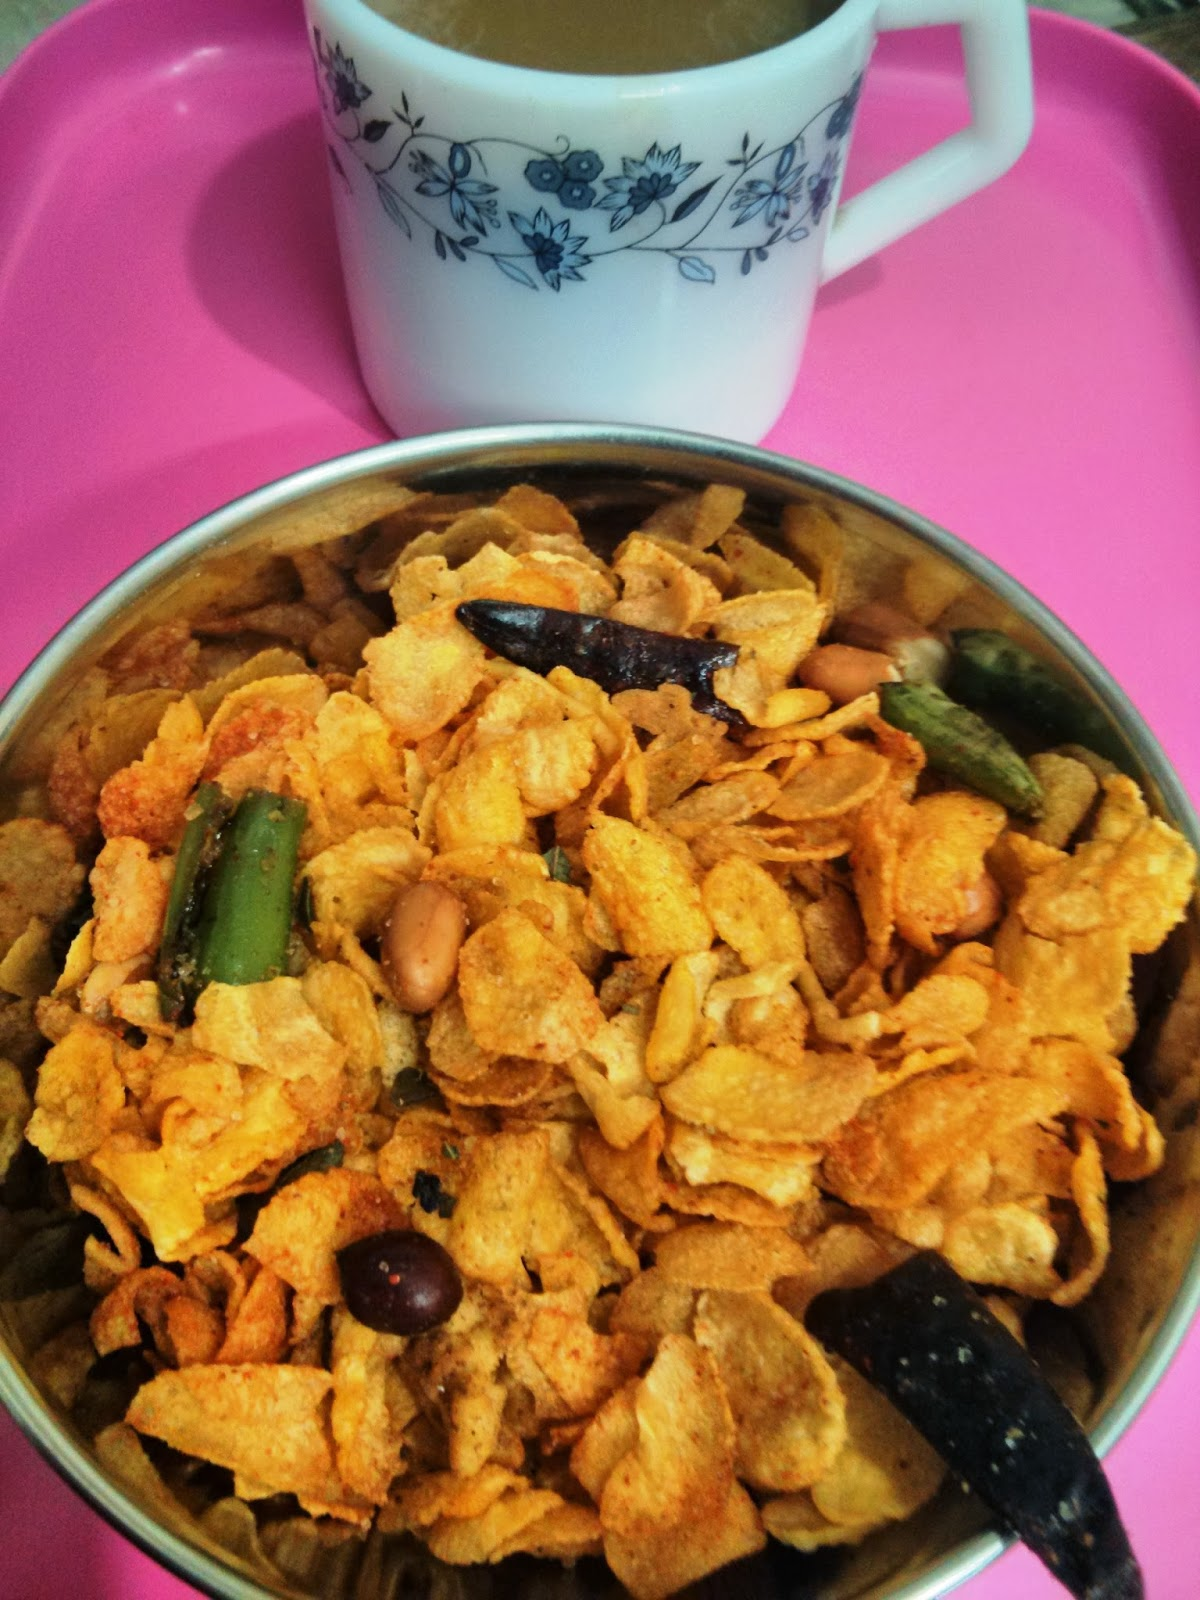 Crispy and crunchy snack made from Cornflakes